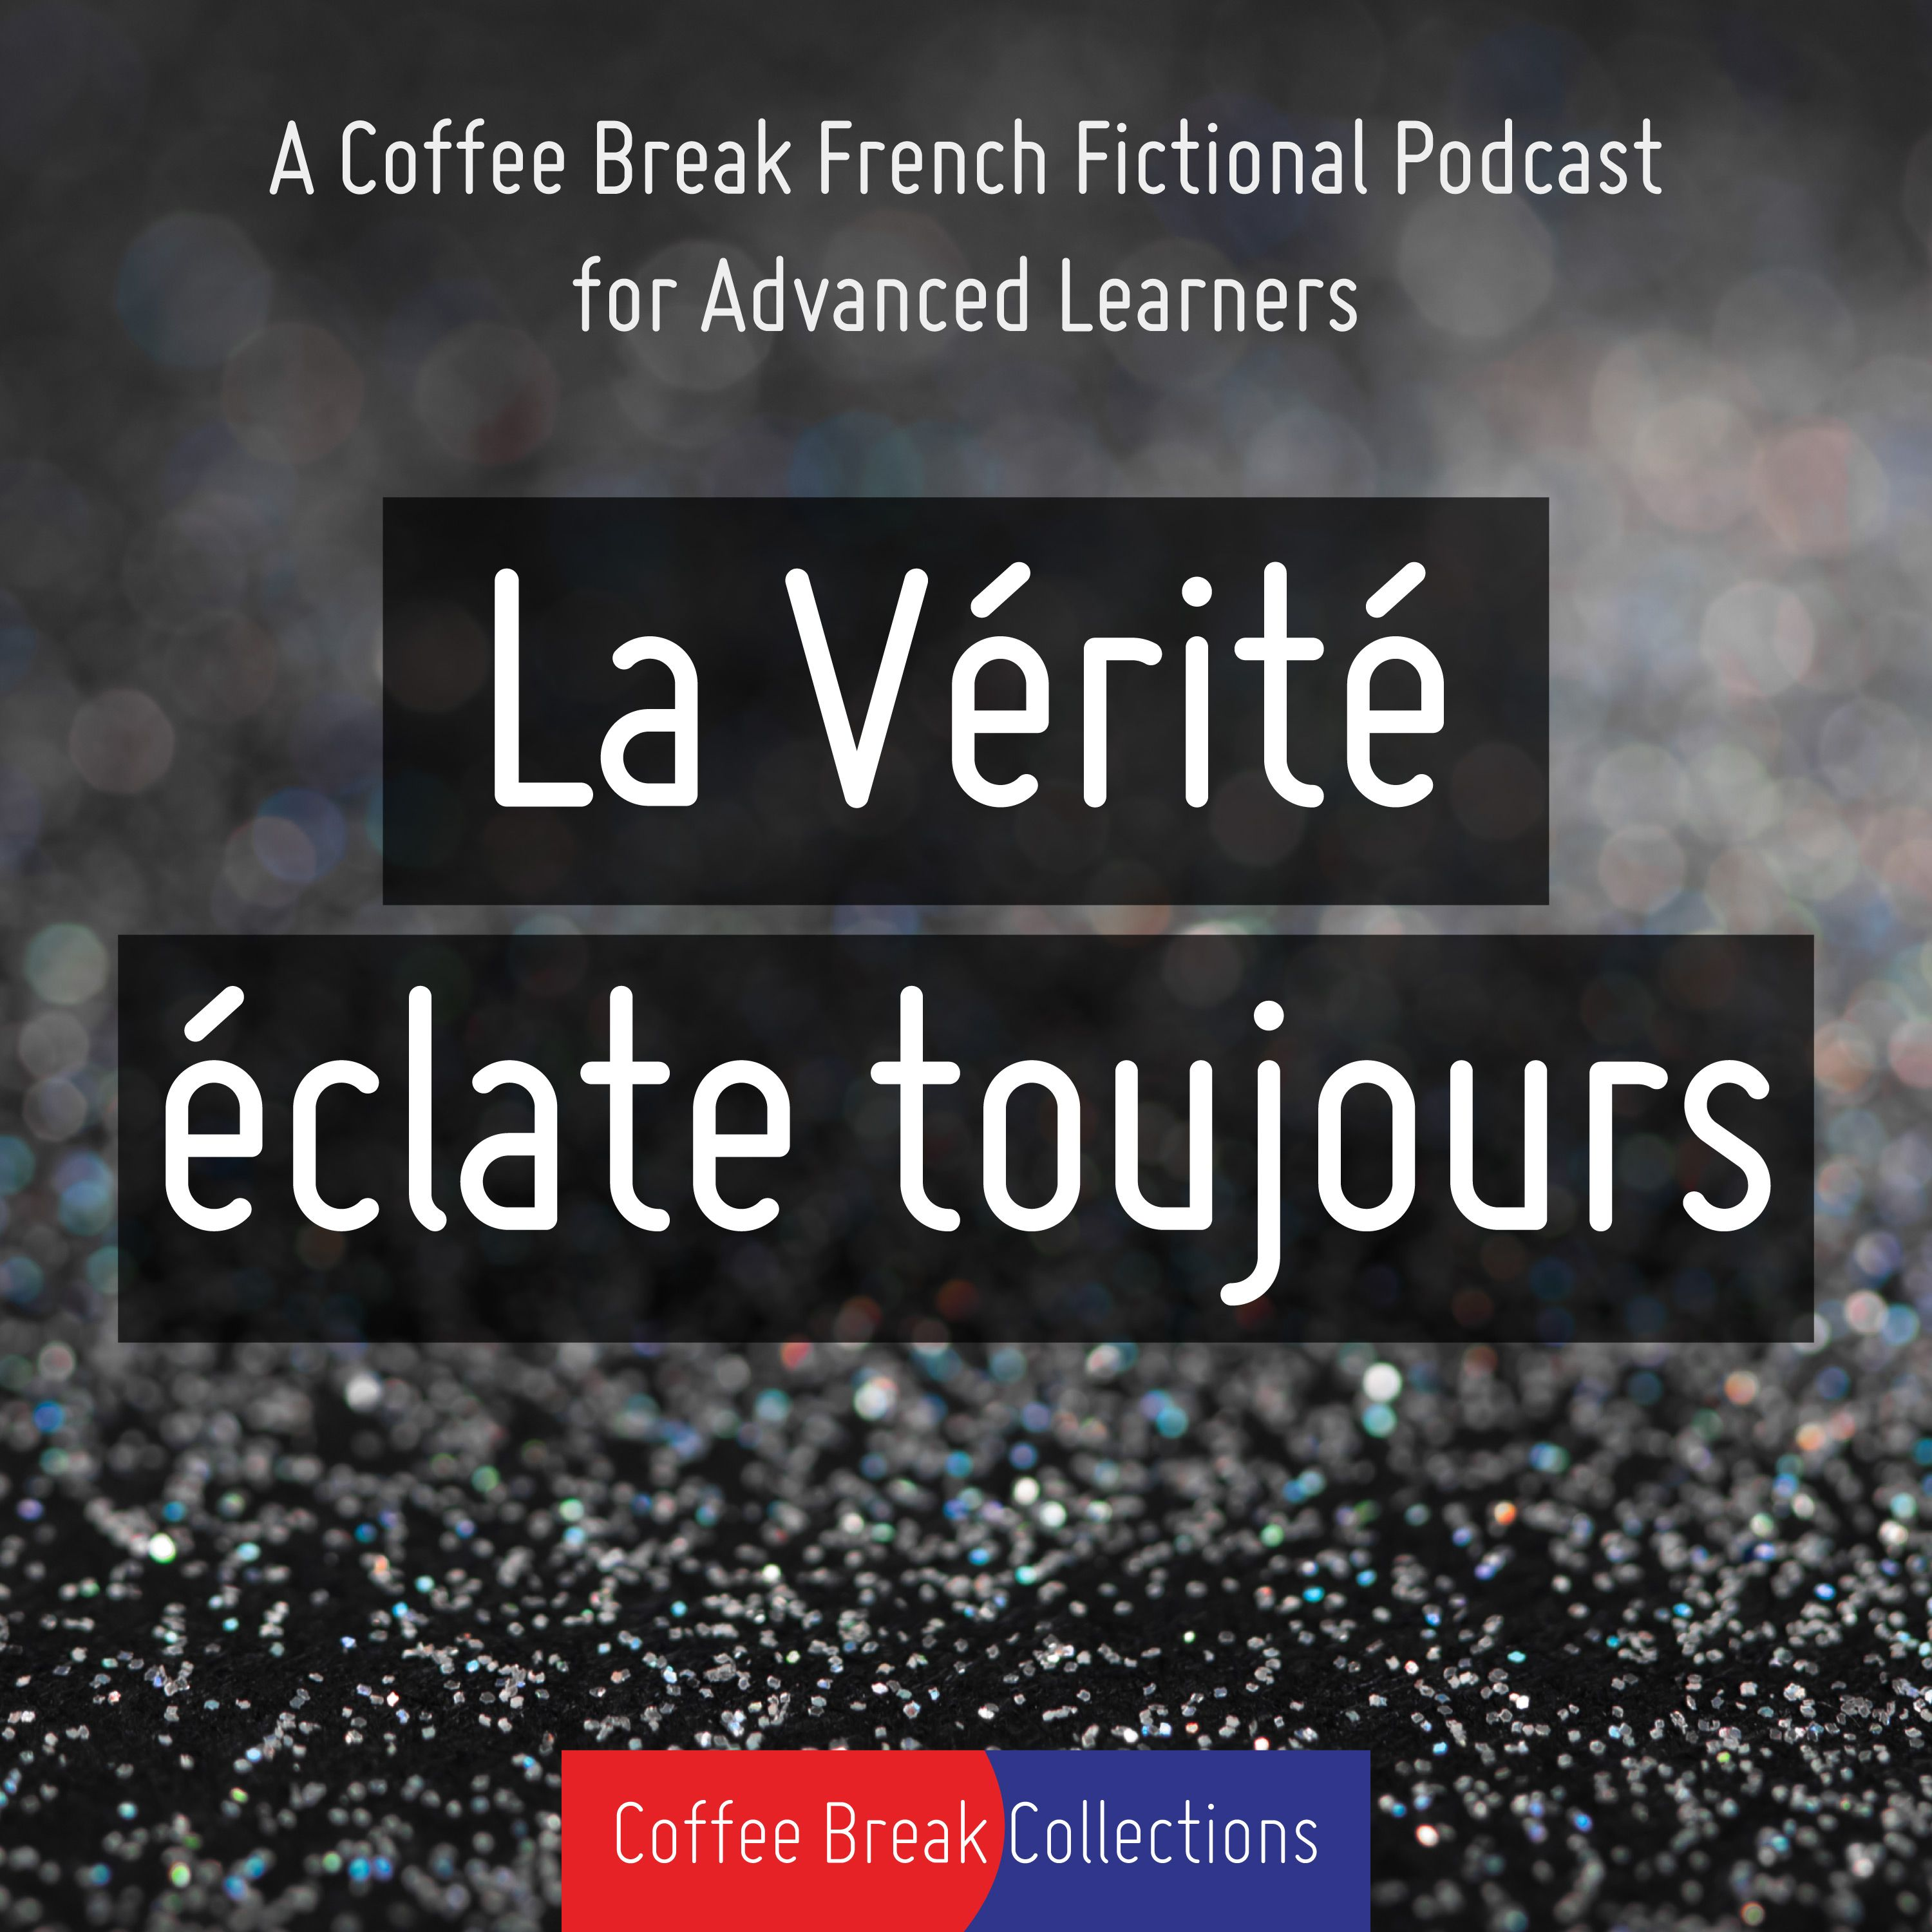 Introducing the Atelier Linguistique and a special offer